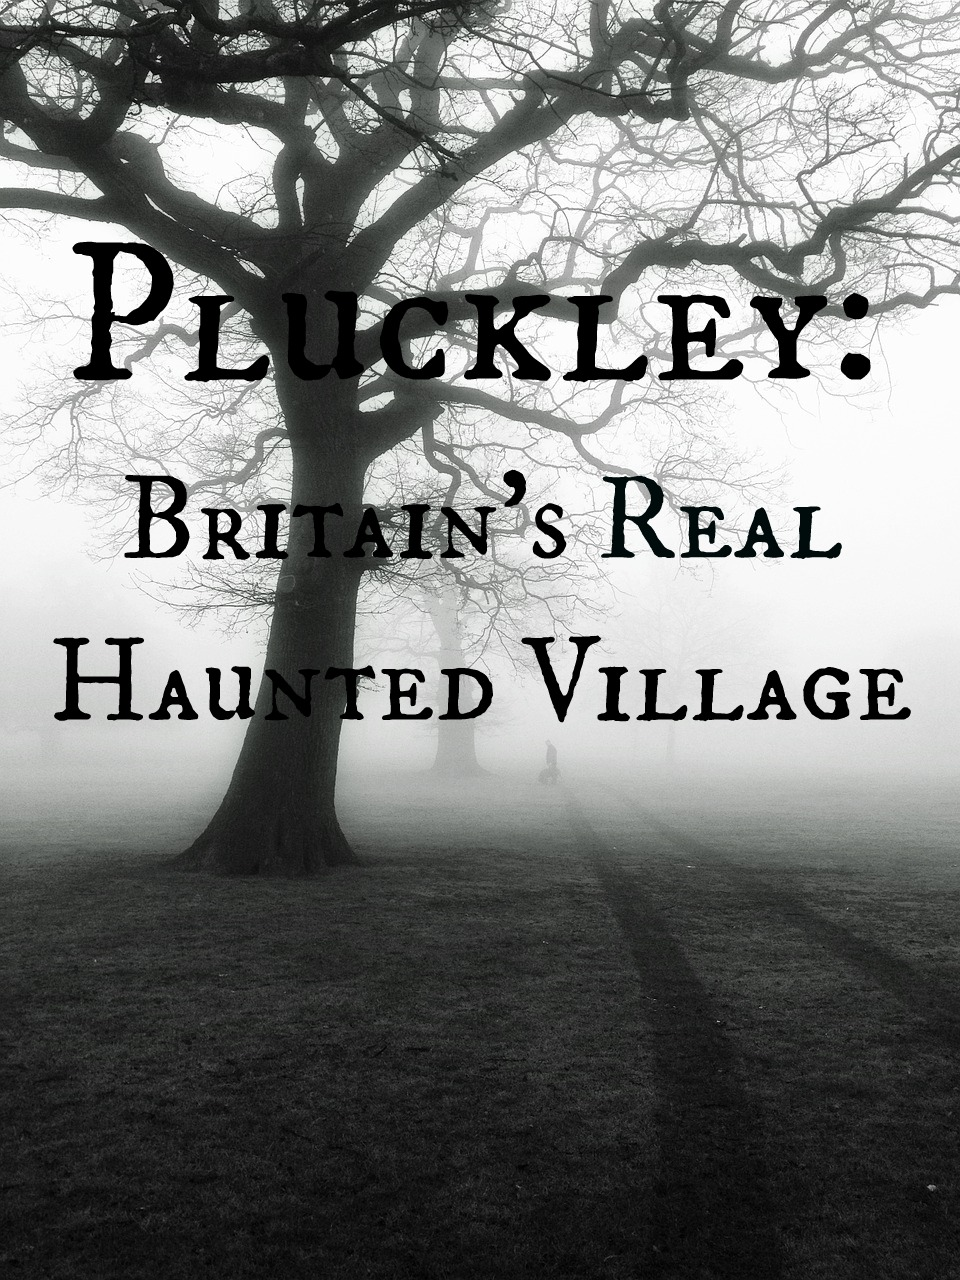 pluckley